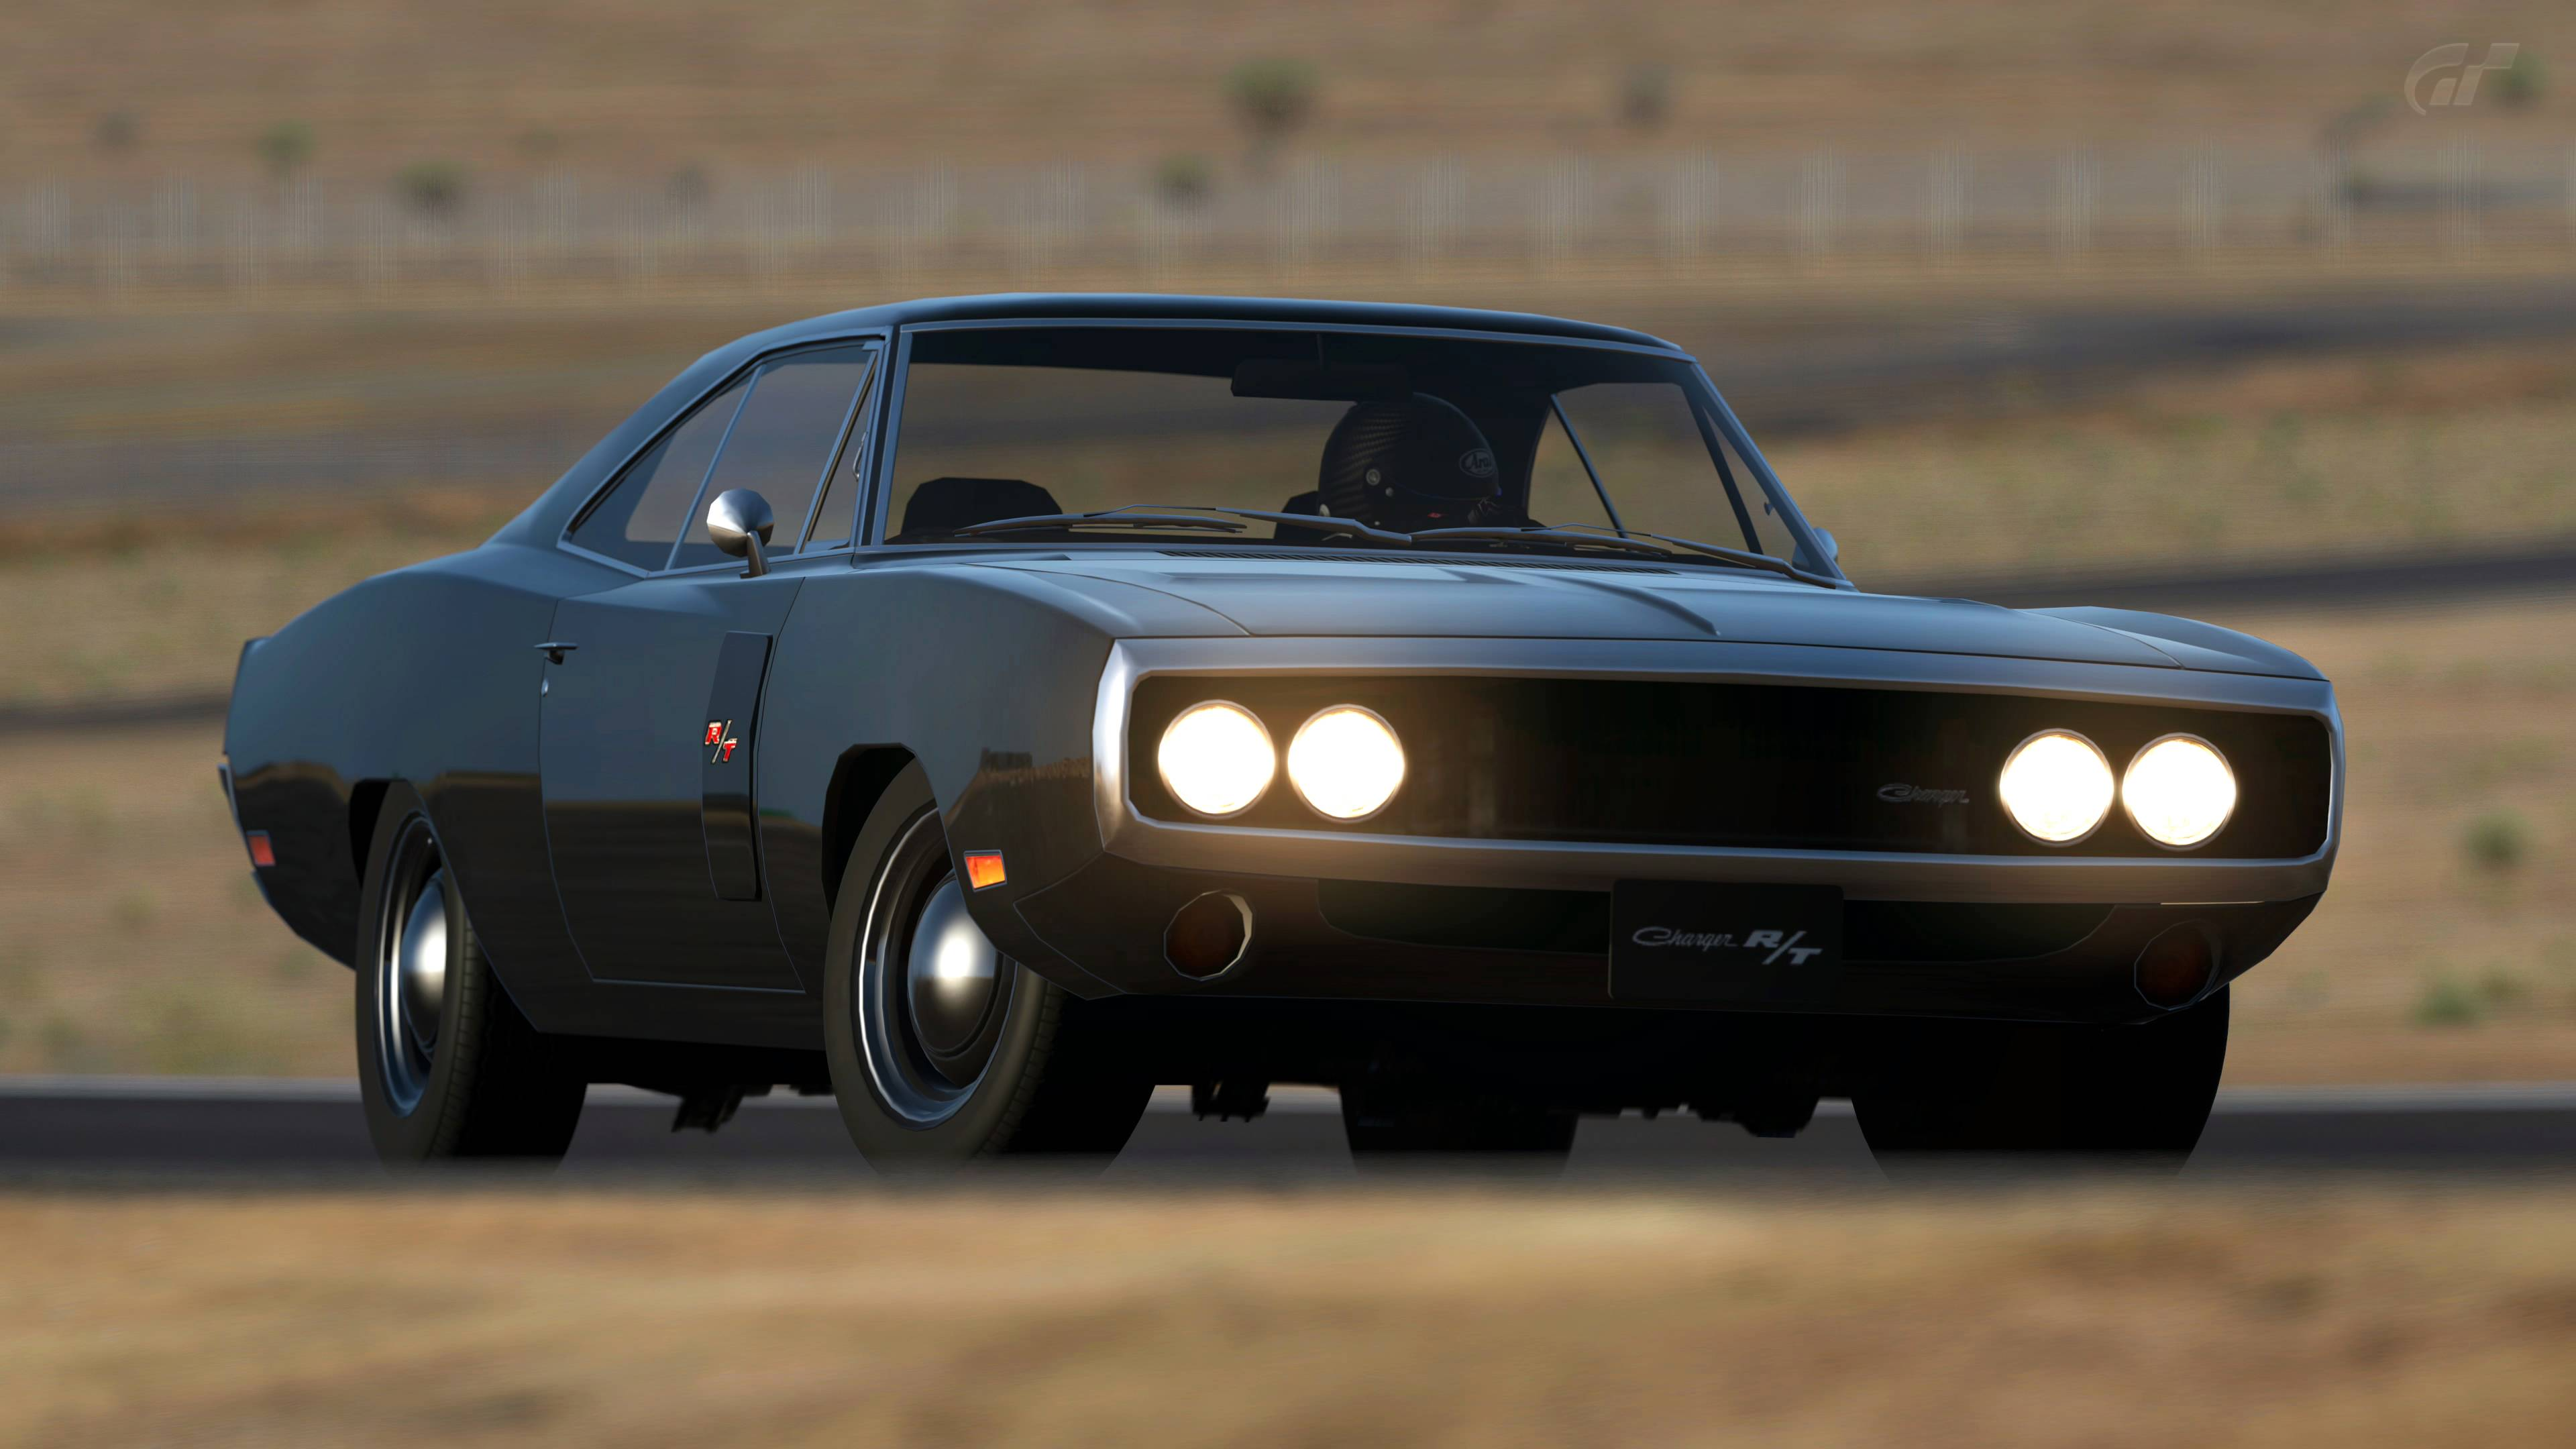 1970 Dodge Charger Image HD Desktop